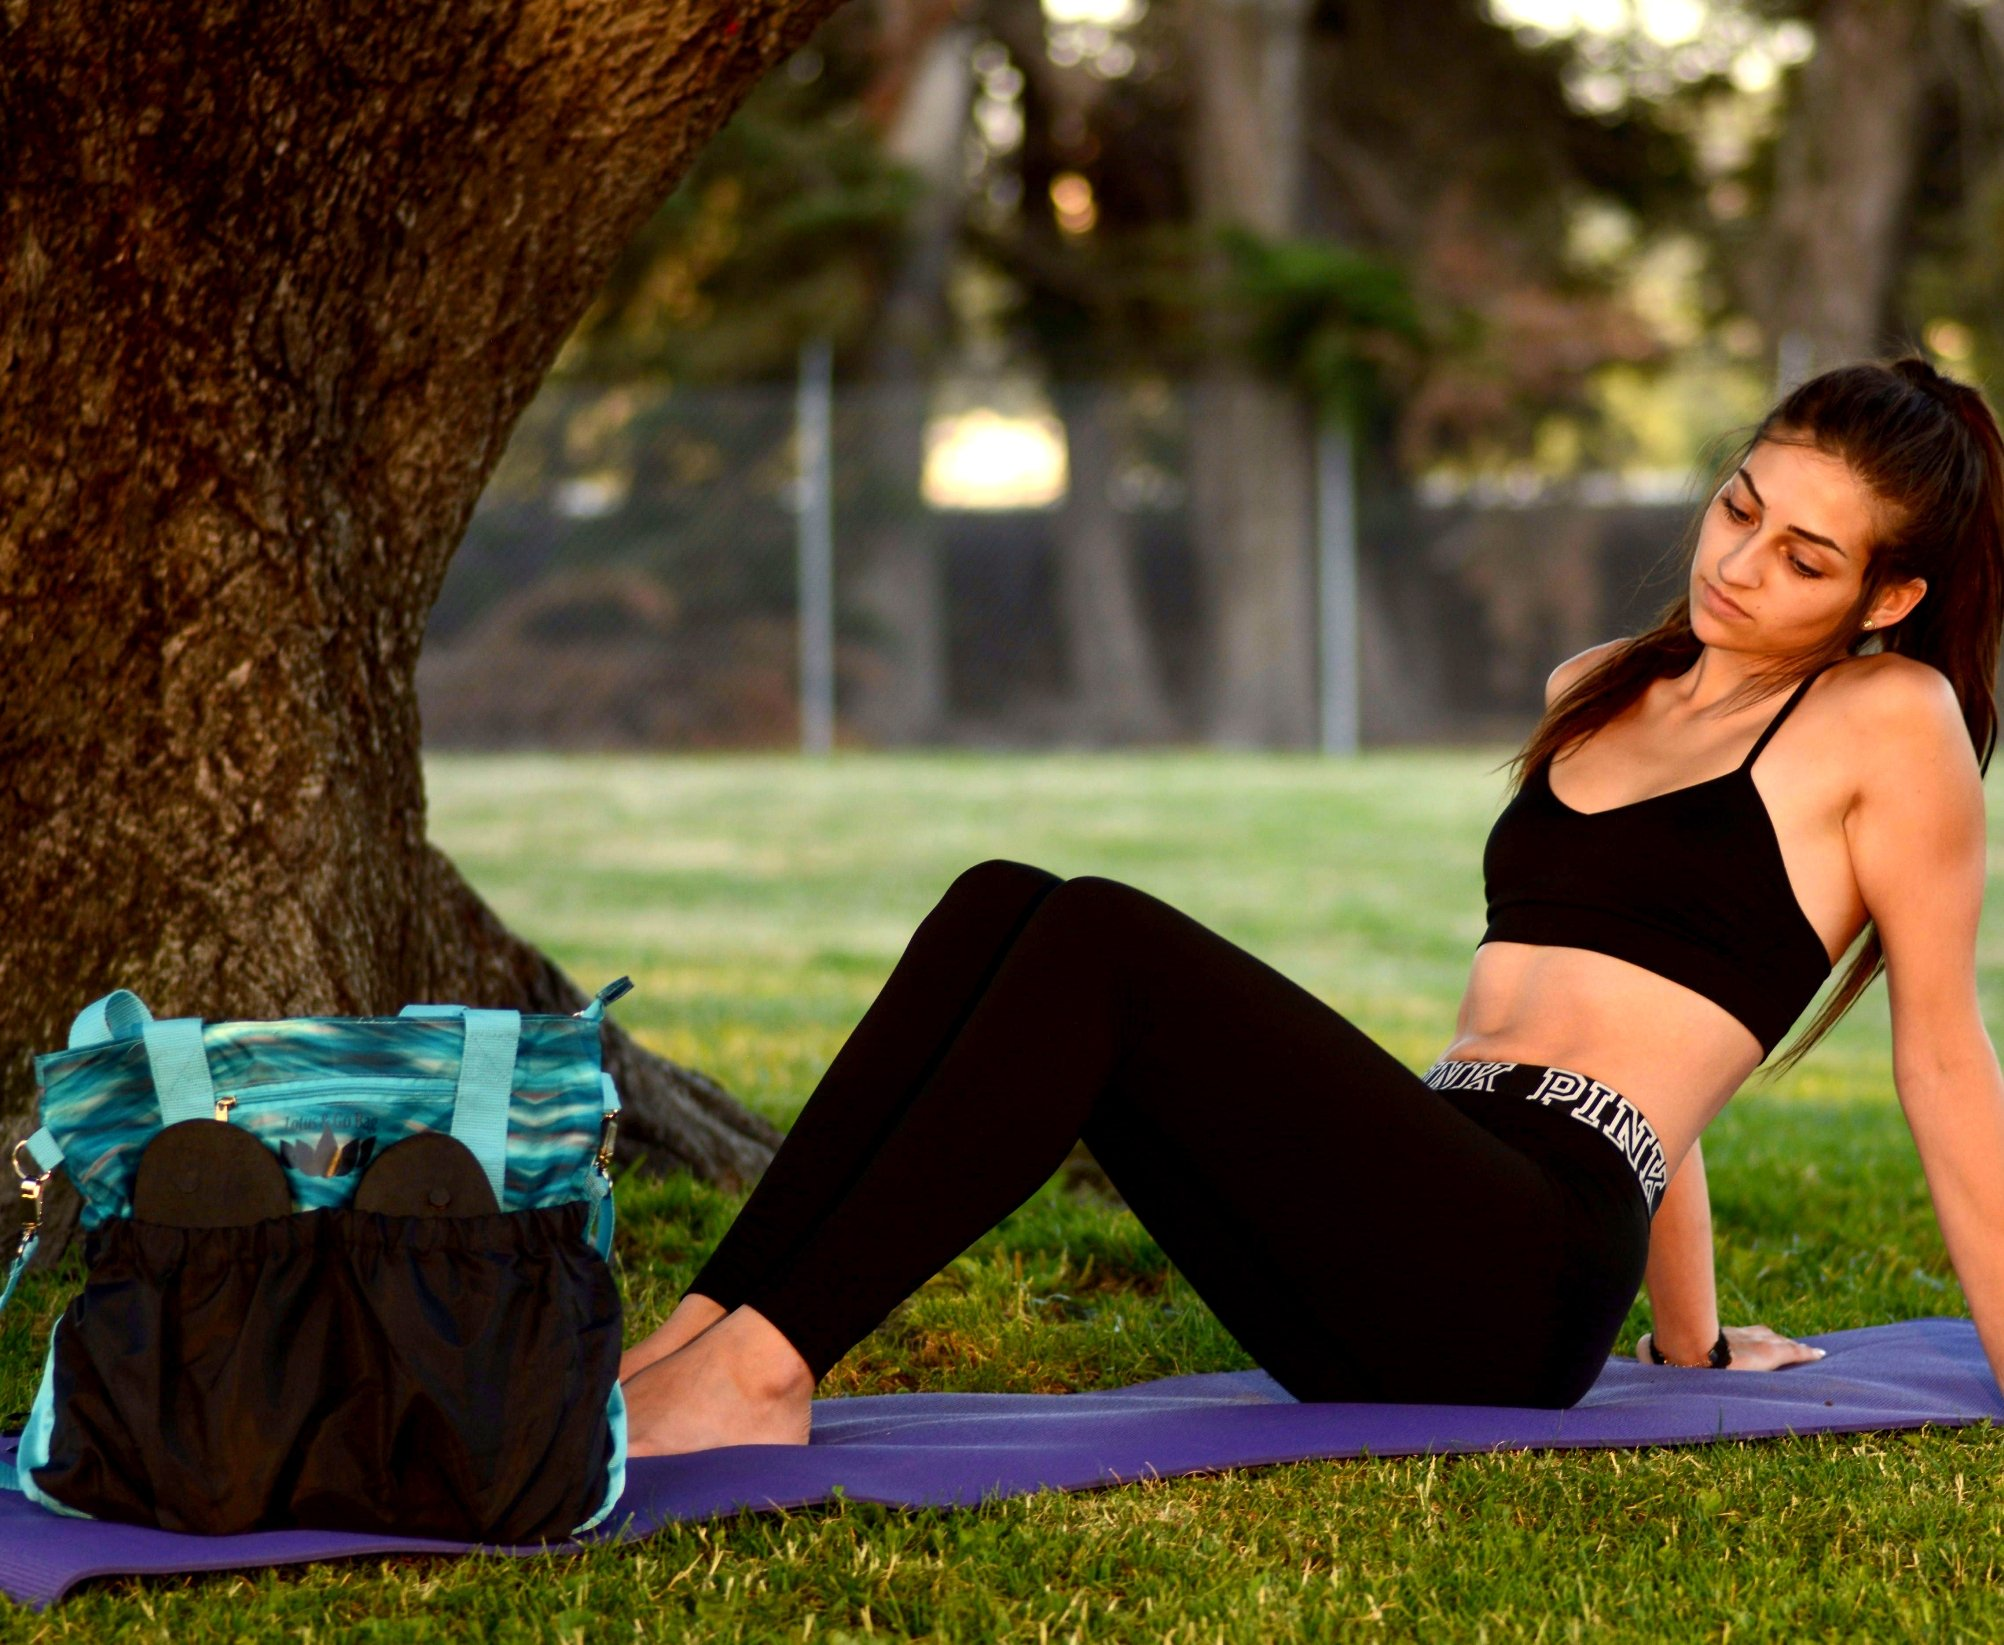 Yoga bags are gifts to send your girlfriend who loves yoga